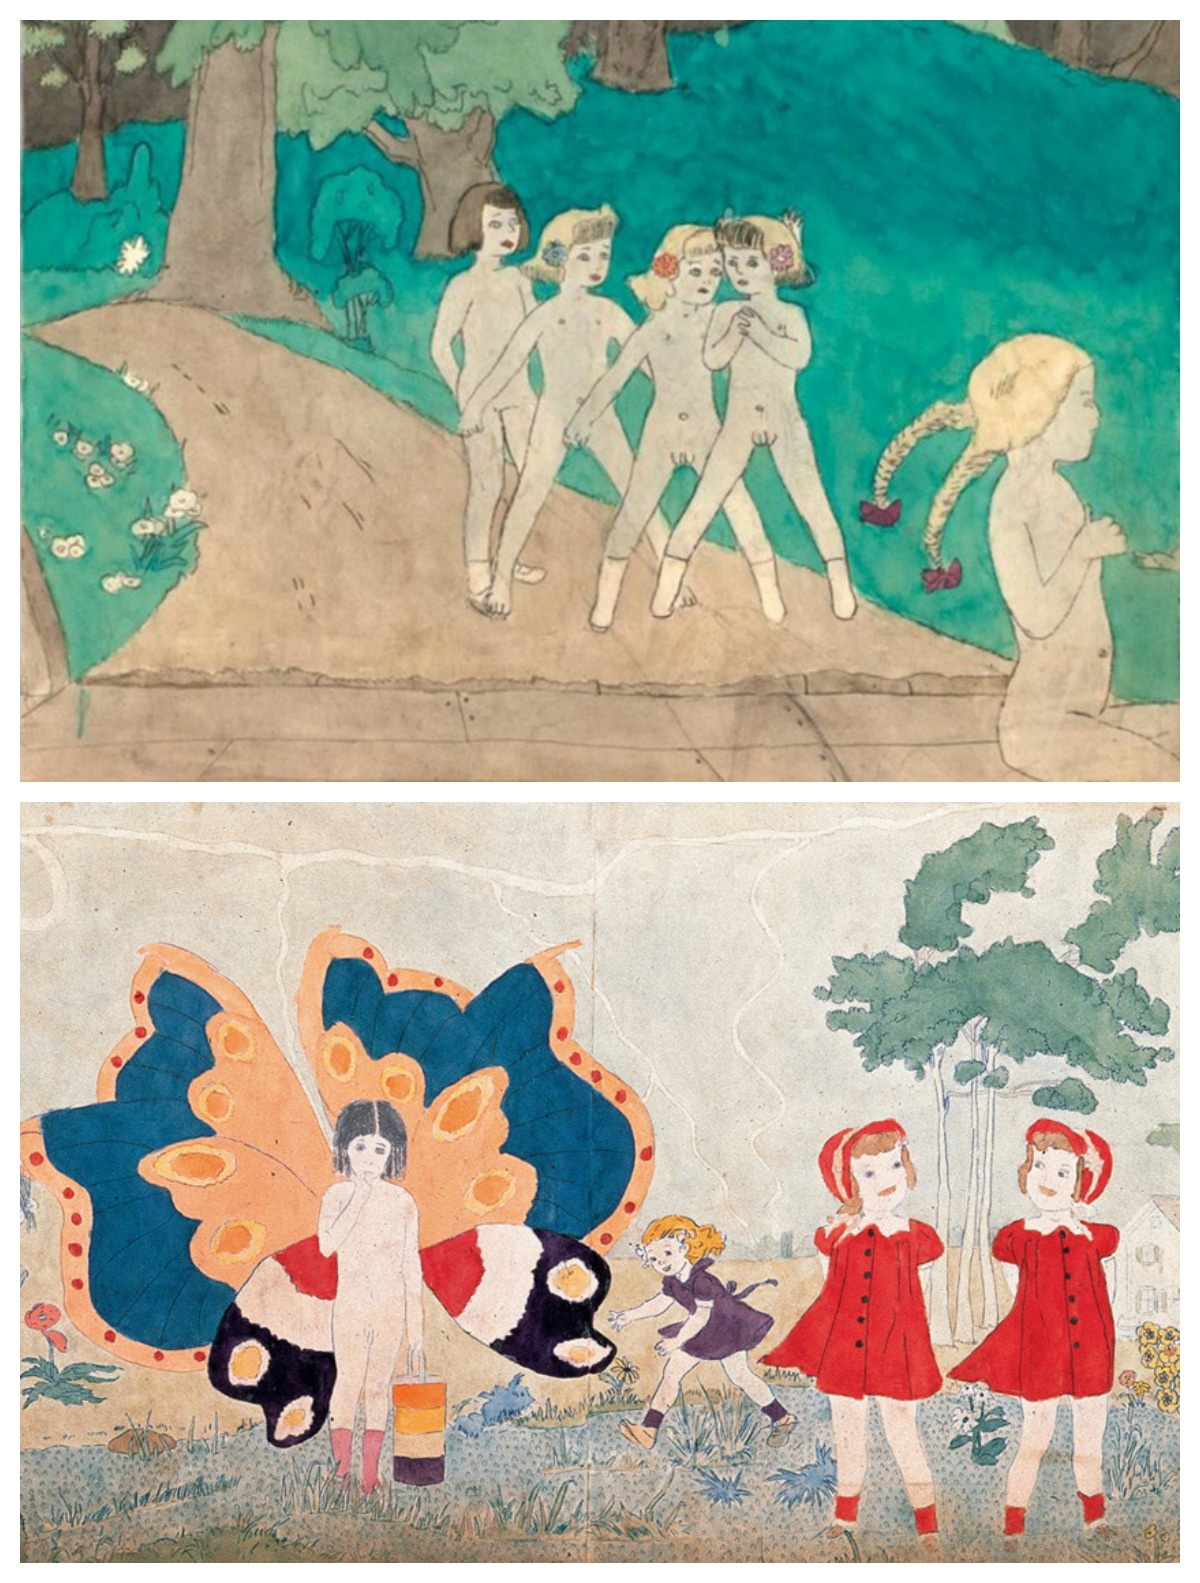 Outsider Artists- these are paintings by outsider artists Henry Darger